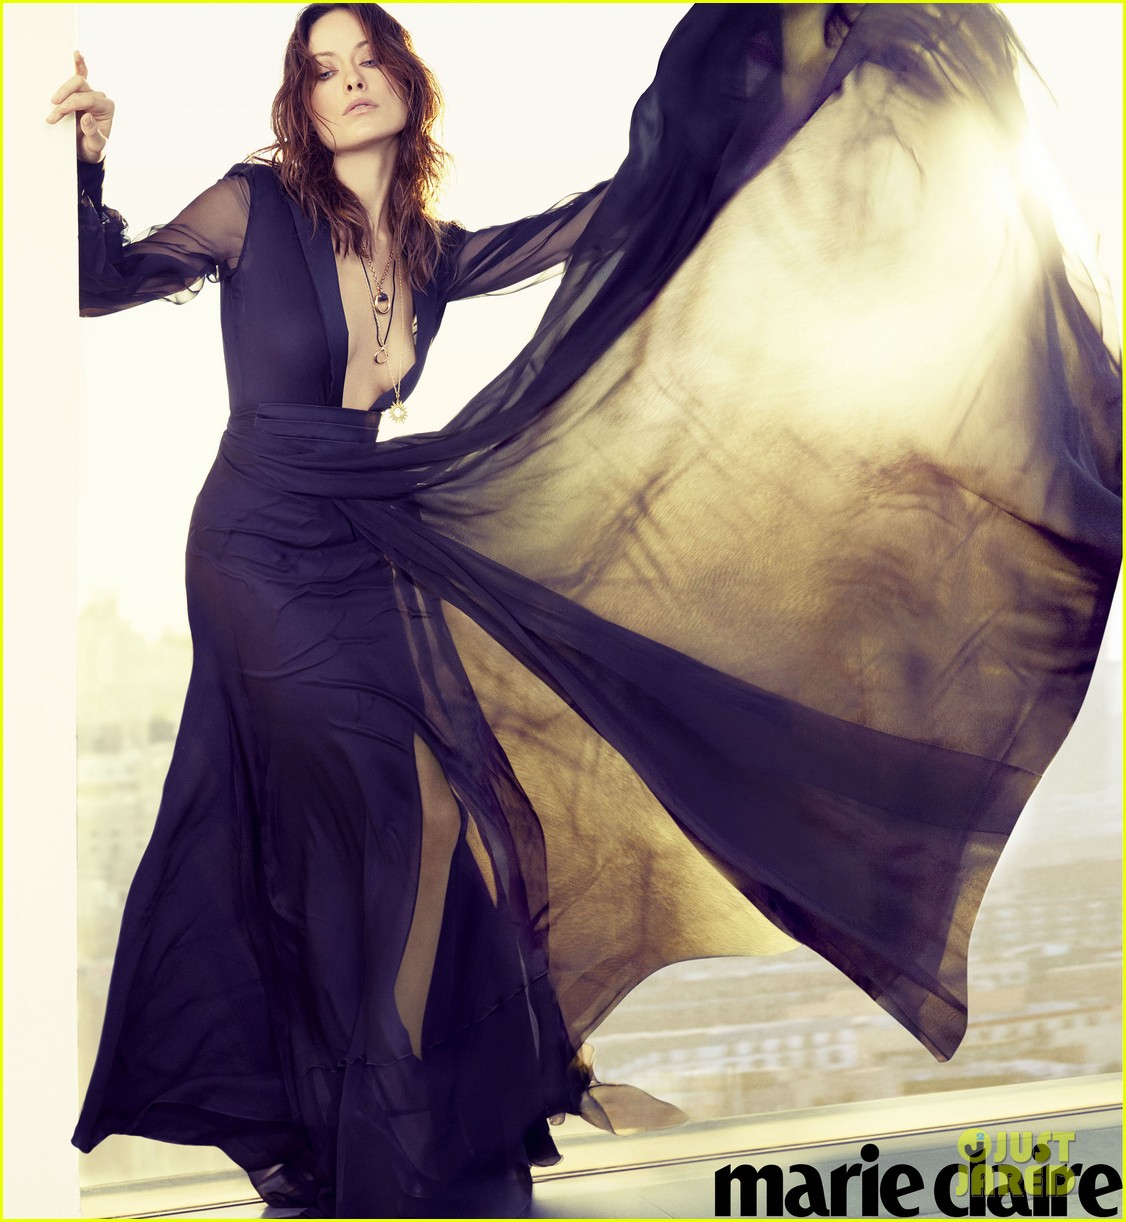 olivia wilde covers marie claire april 2013 03